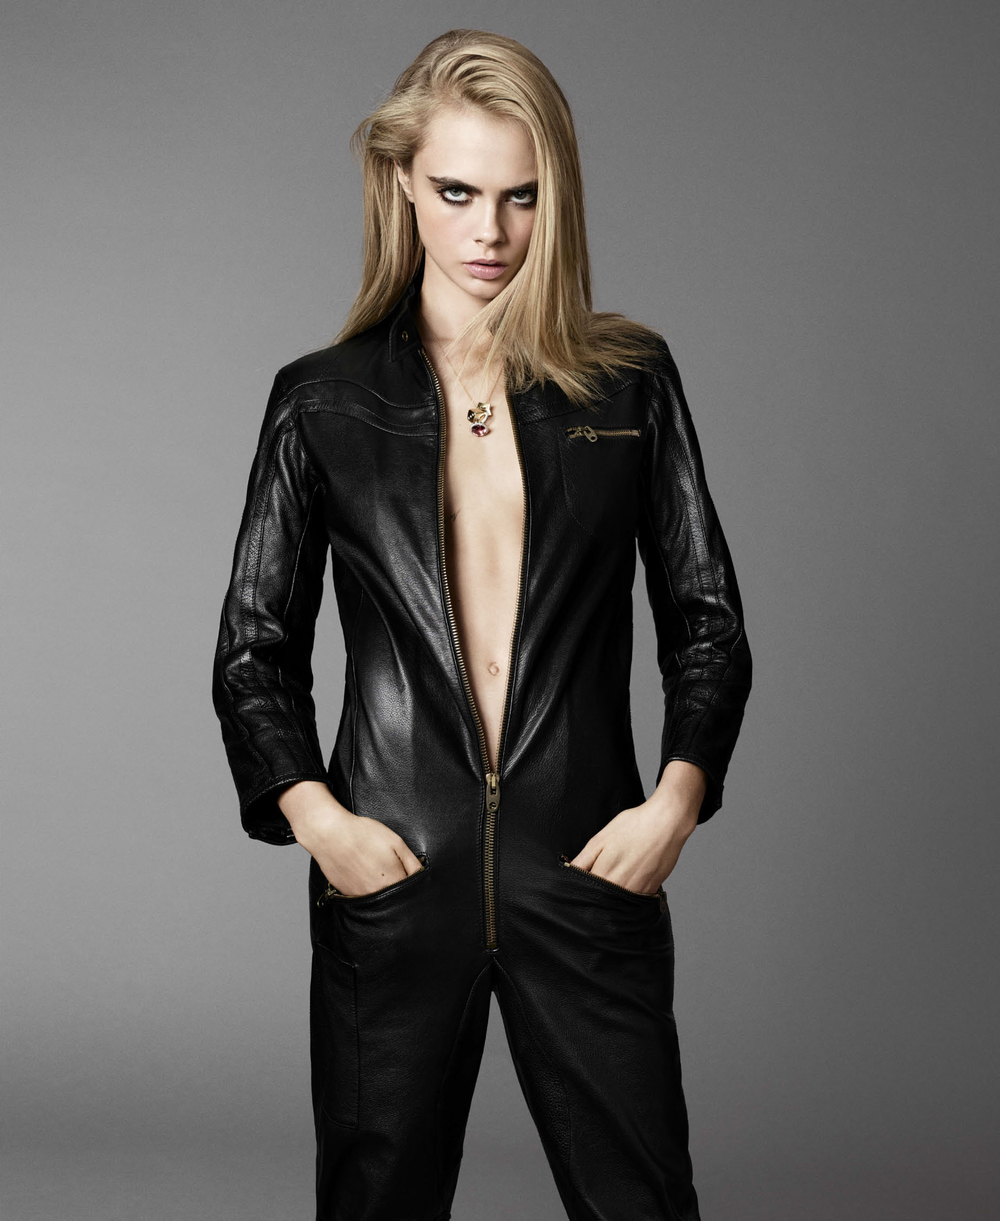 Cara Delevingne Goes Lightly By Terry Tsiolis For Elle US